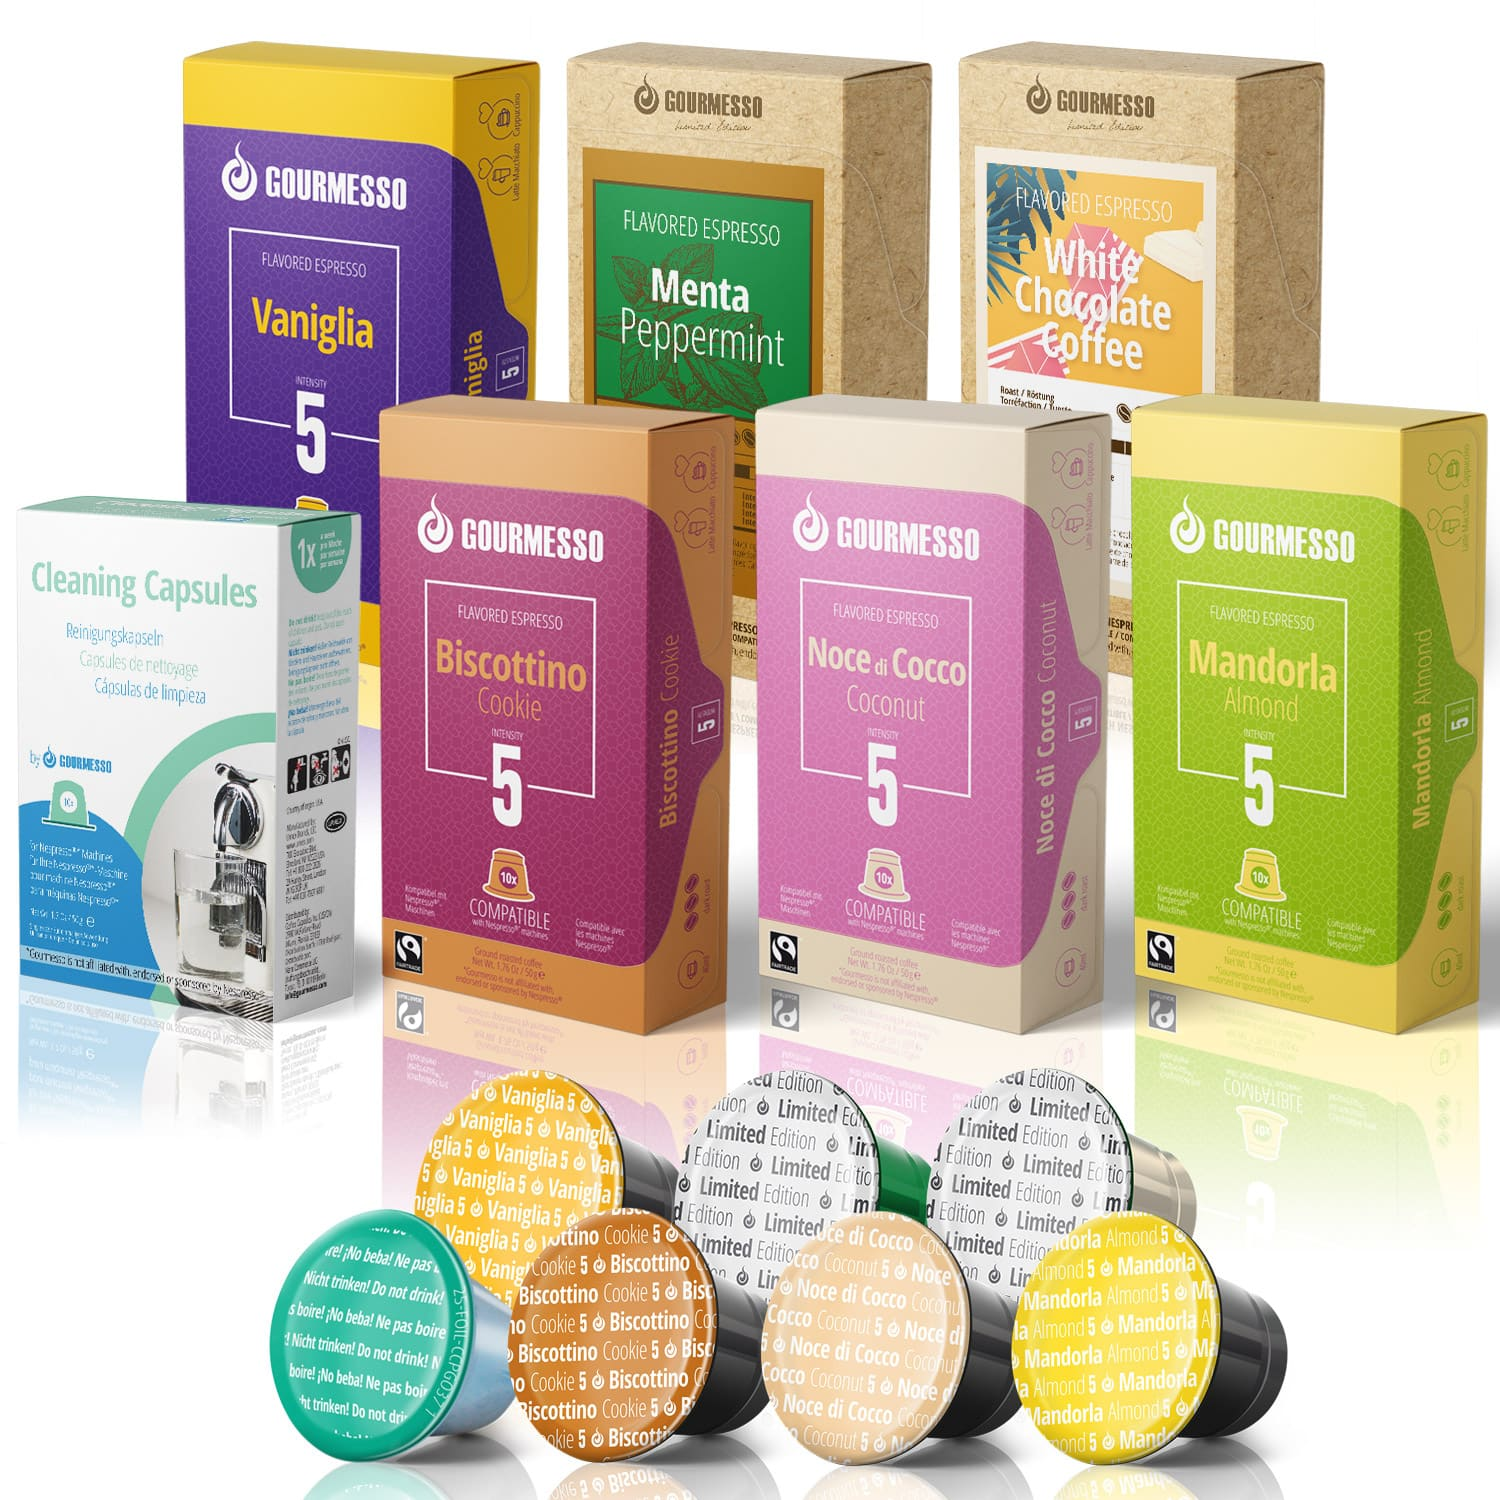 Gourmesso- 60 Flavored Fairtrade Nespresso Compatible Pods for 29.00 + Free Cleaning Capsules and Free Shipping $29